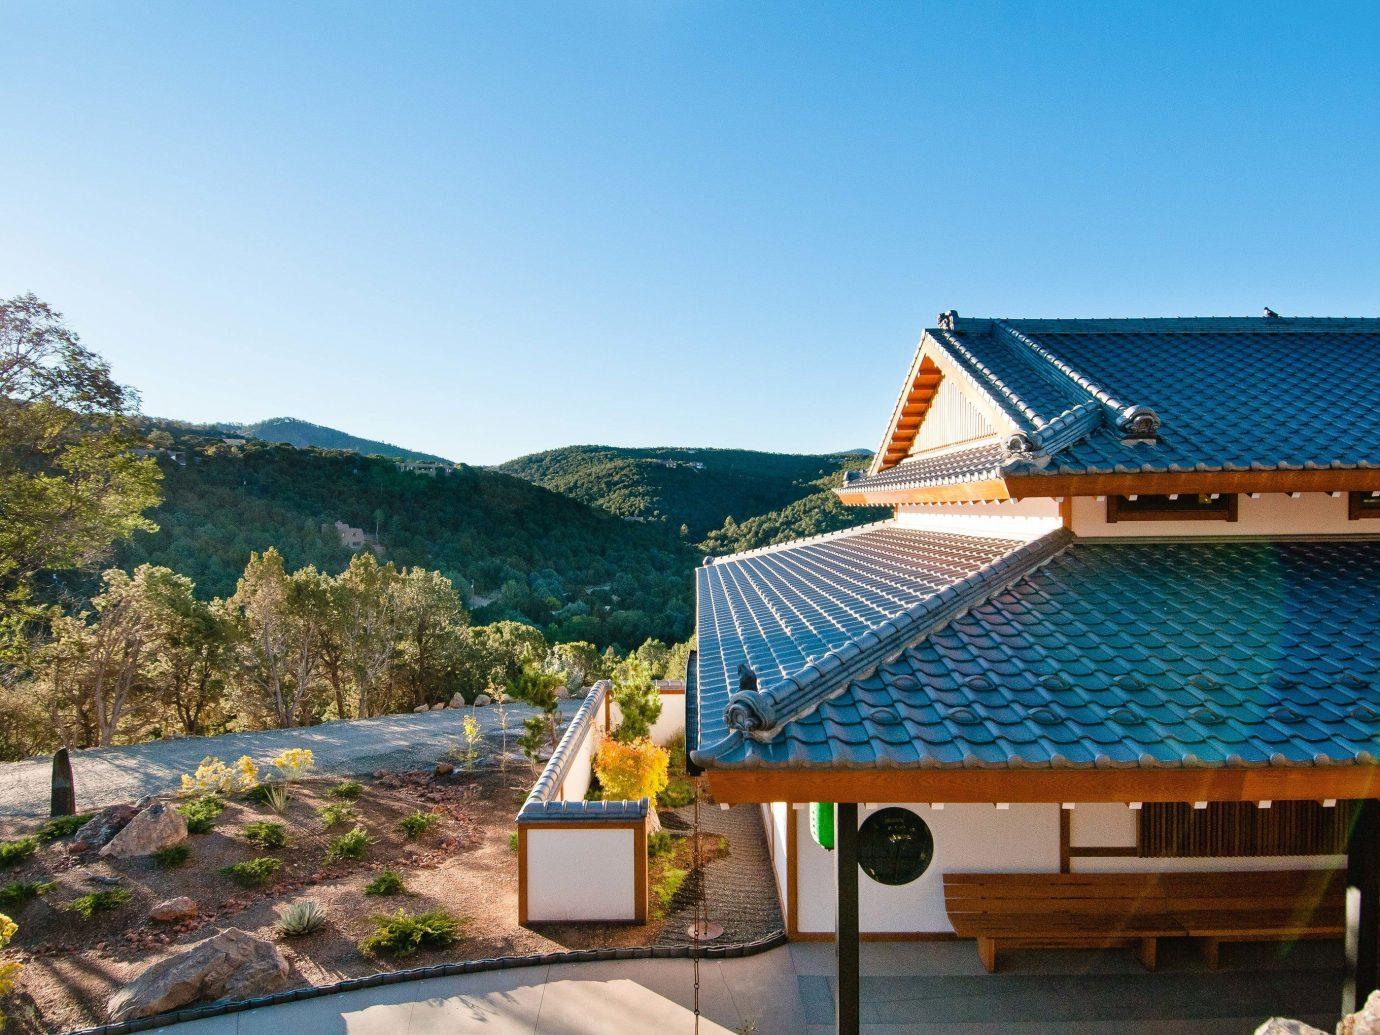 roof property sky plant real estate house home mountain leisure tree outdoor structure landscape estate water cottage mountain range energy Villa tourism vacation Resort elevation facade